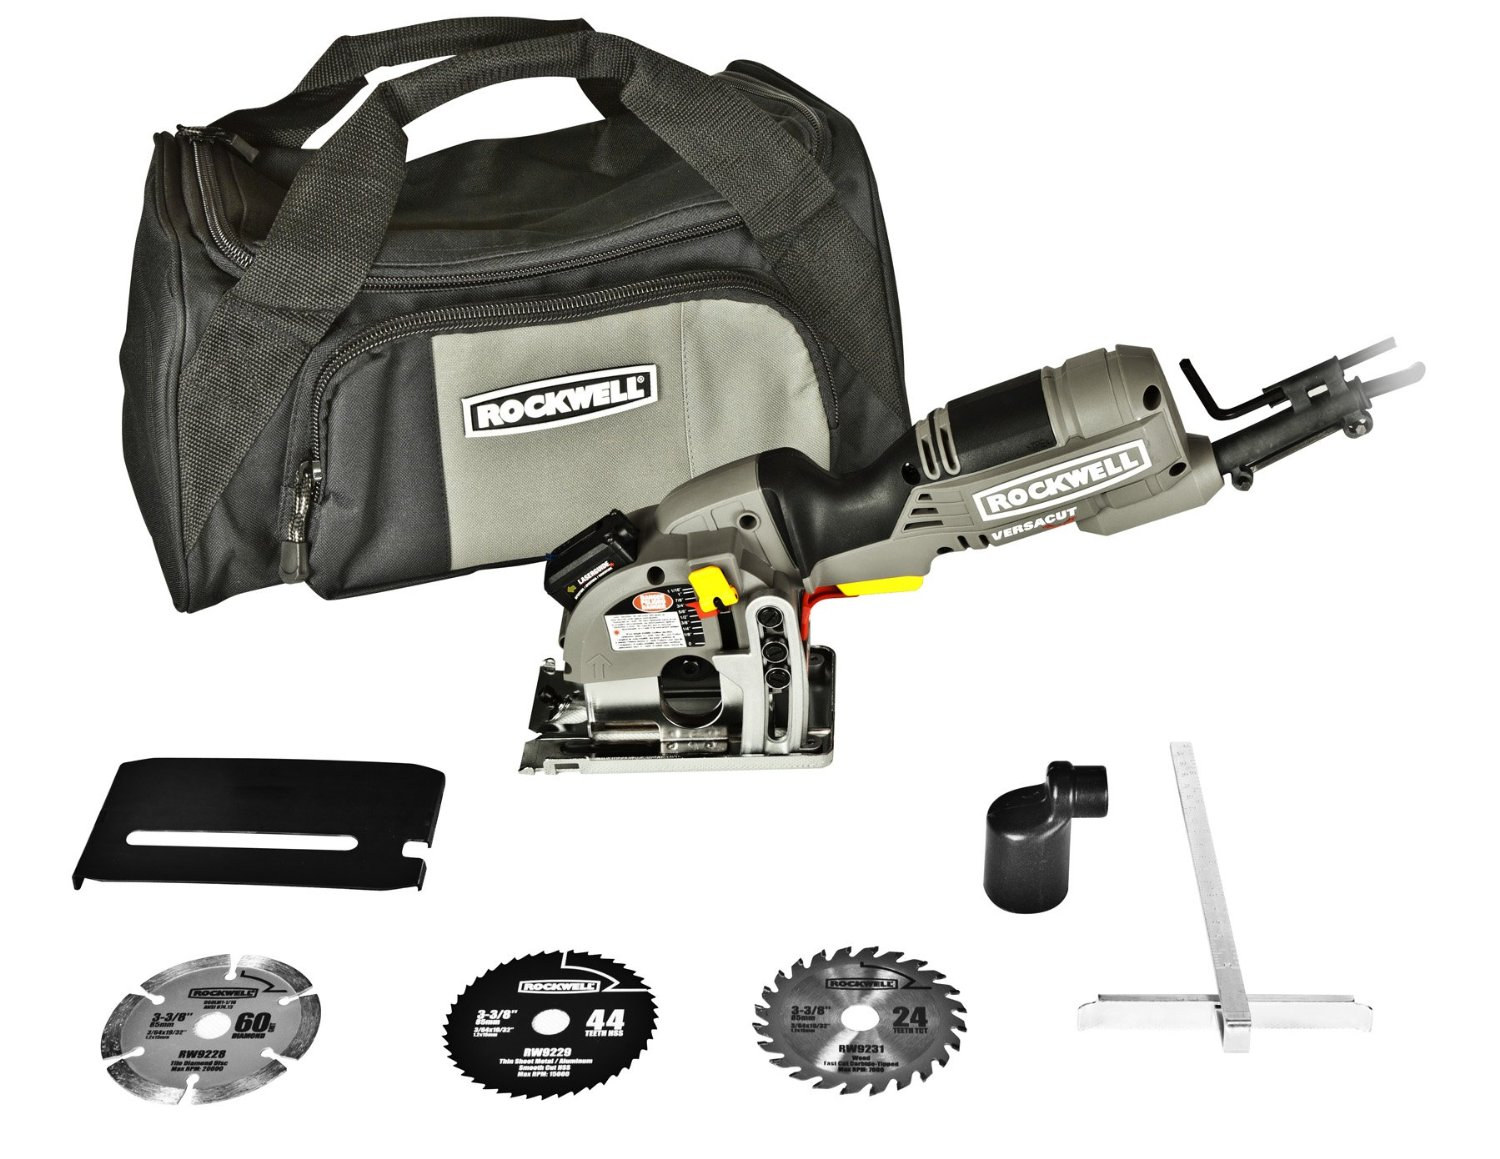 Rockwell RK3440K Circular Saw Review1